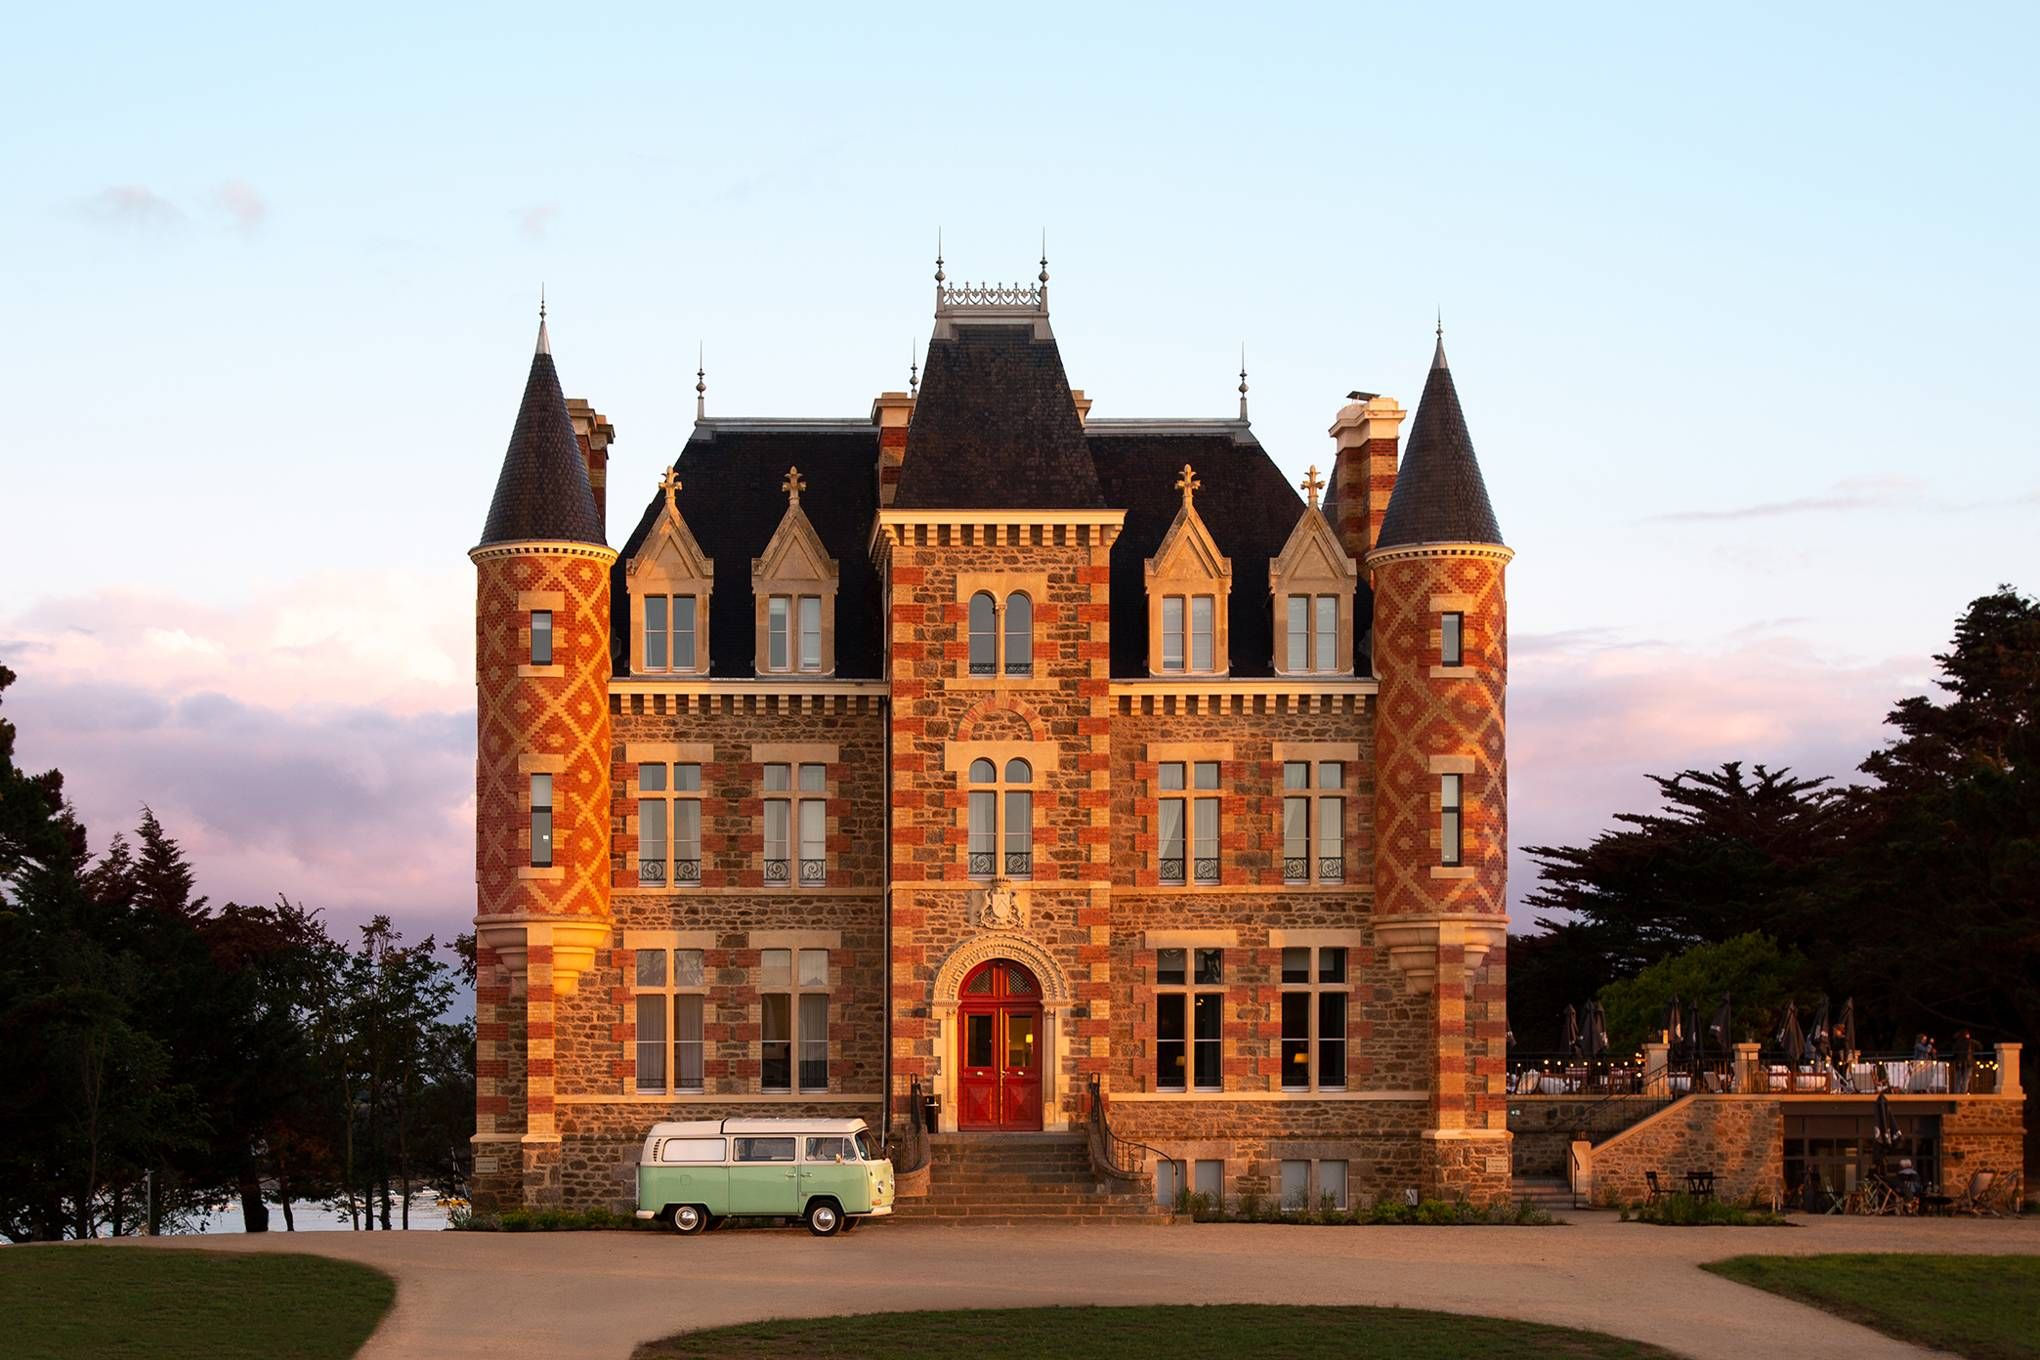 The most beautiful château hotels in France in 2020